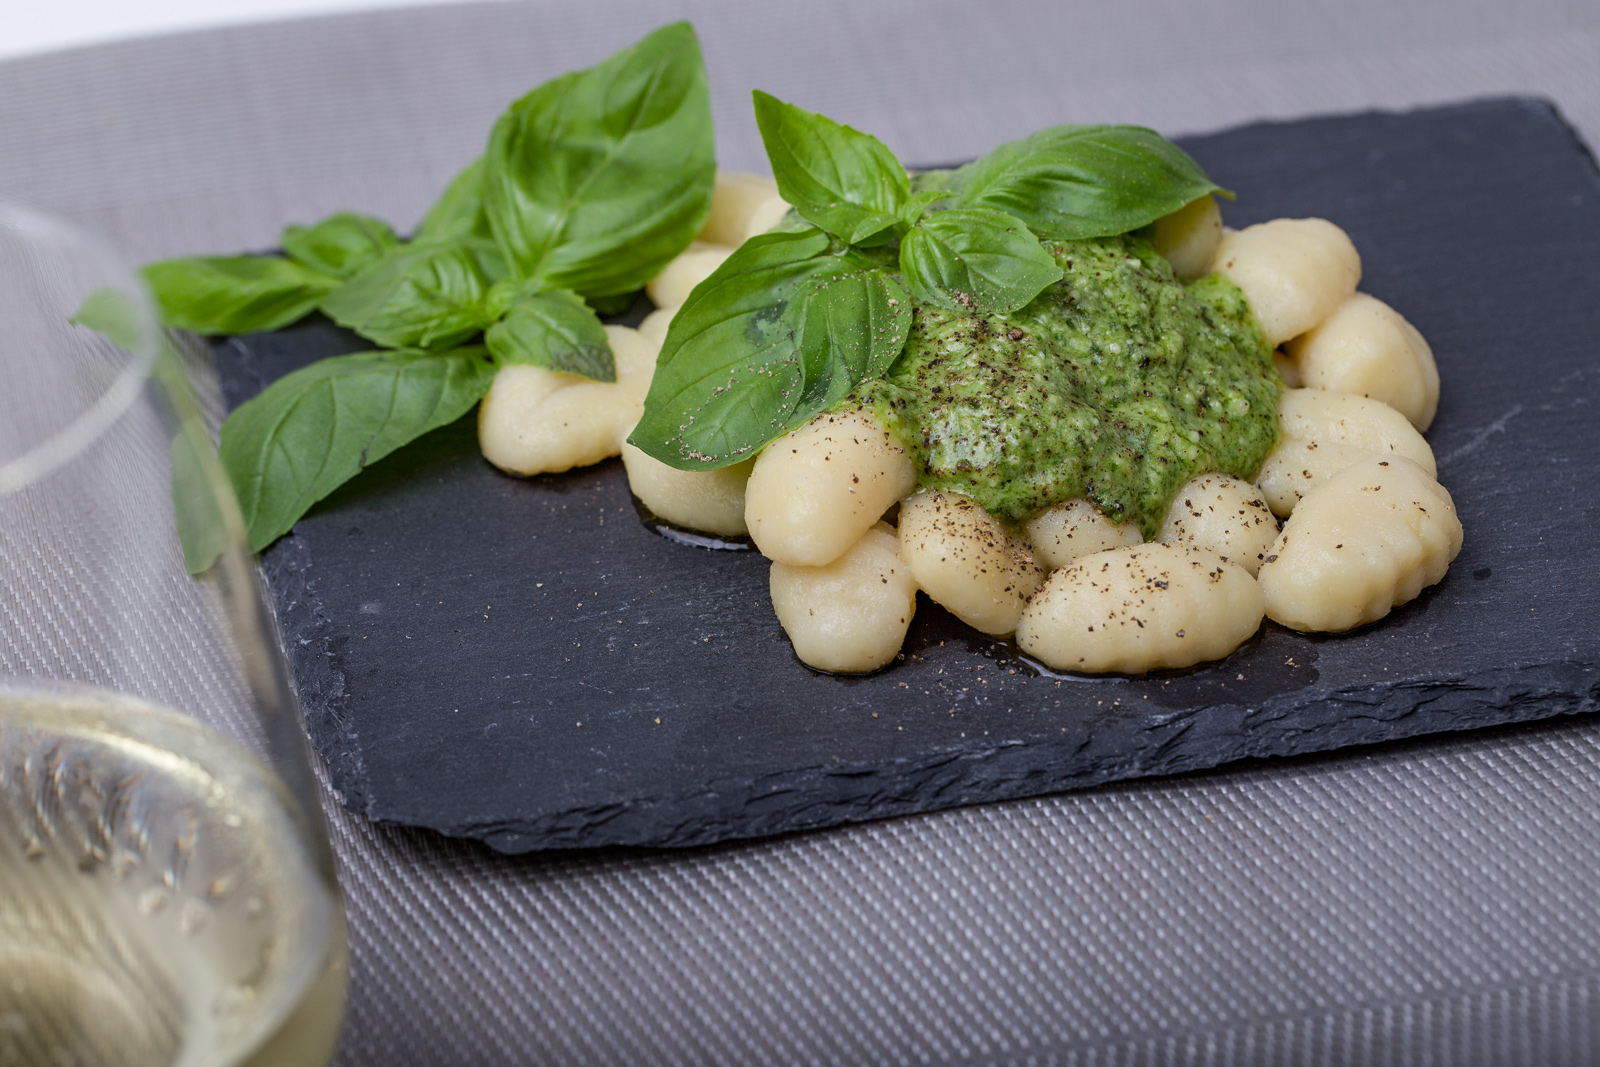 rezept gnocchi mit basilikum knoblauch pesto. Black Bedroom Furniture Sets. Home Design Ideas